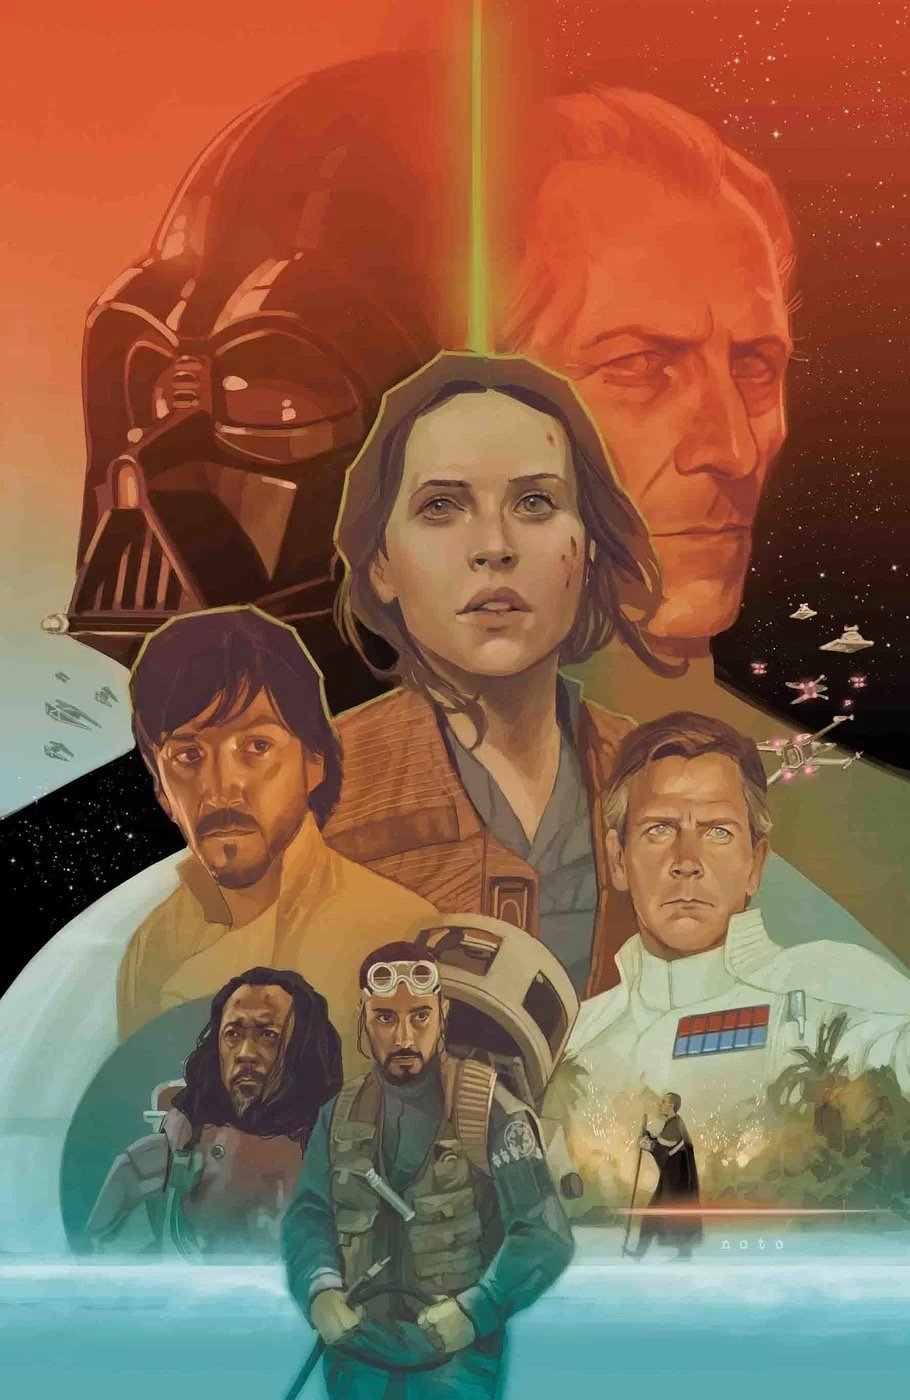 marvelrogueone5 next issue cover